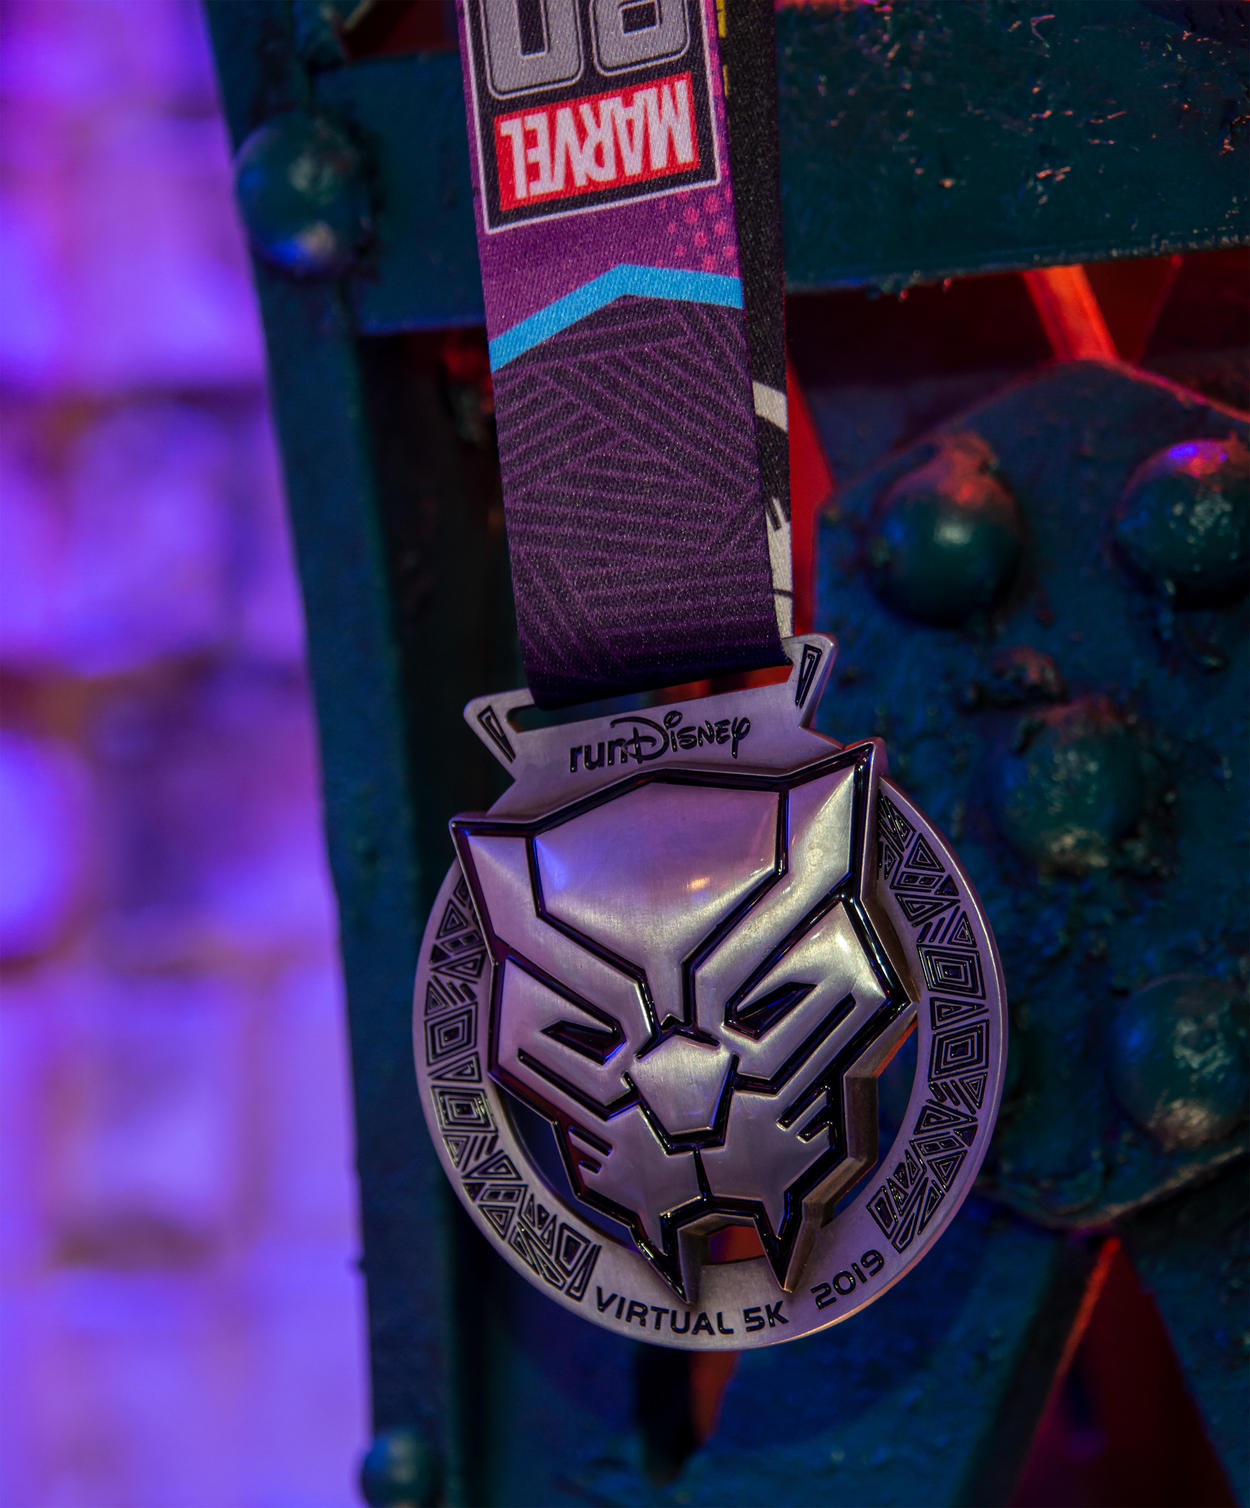 Black Panther runDisney medal